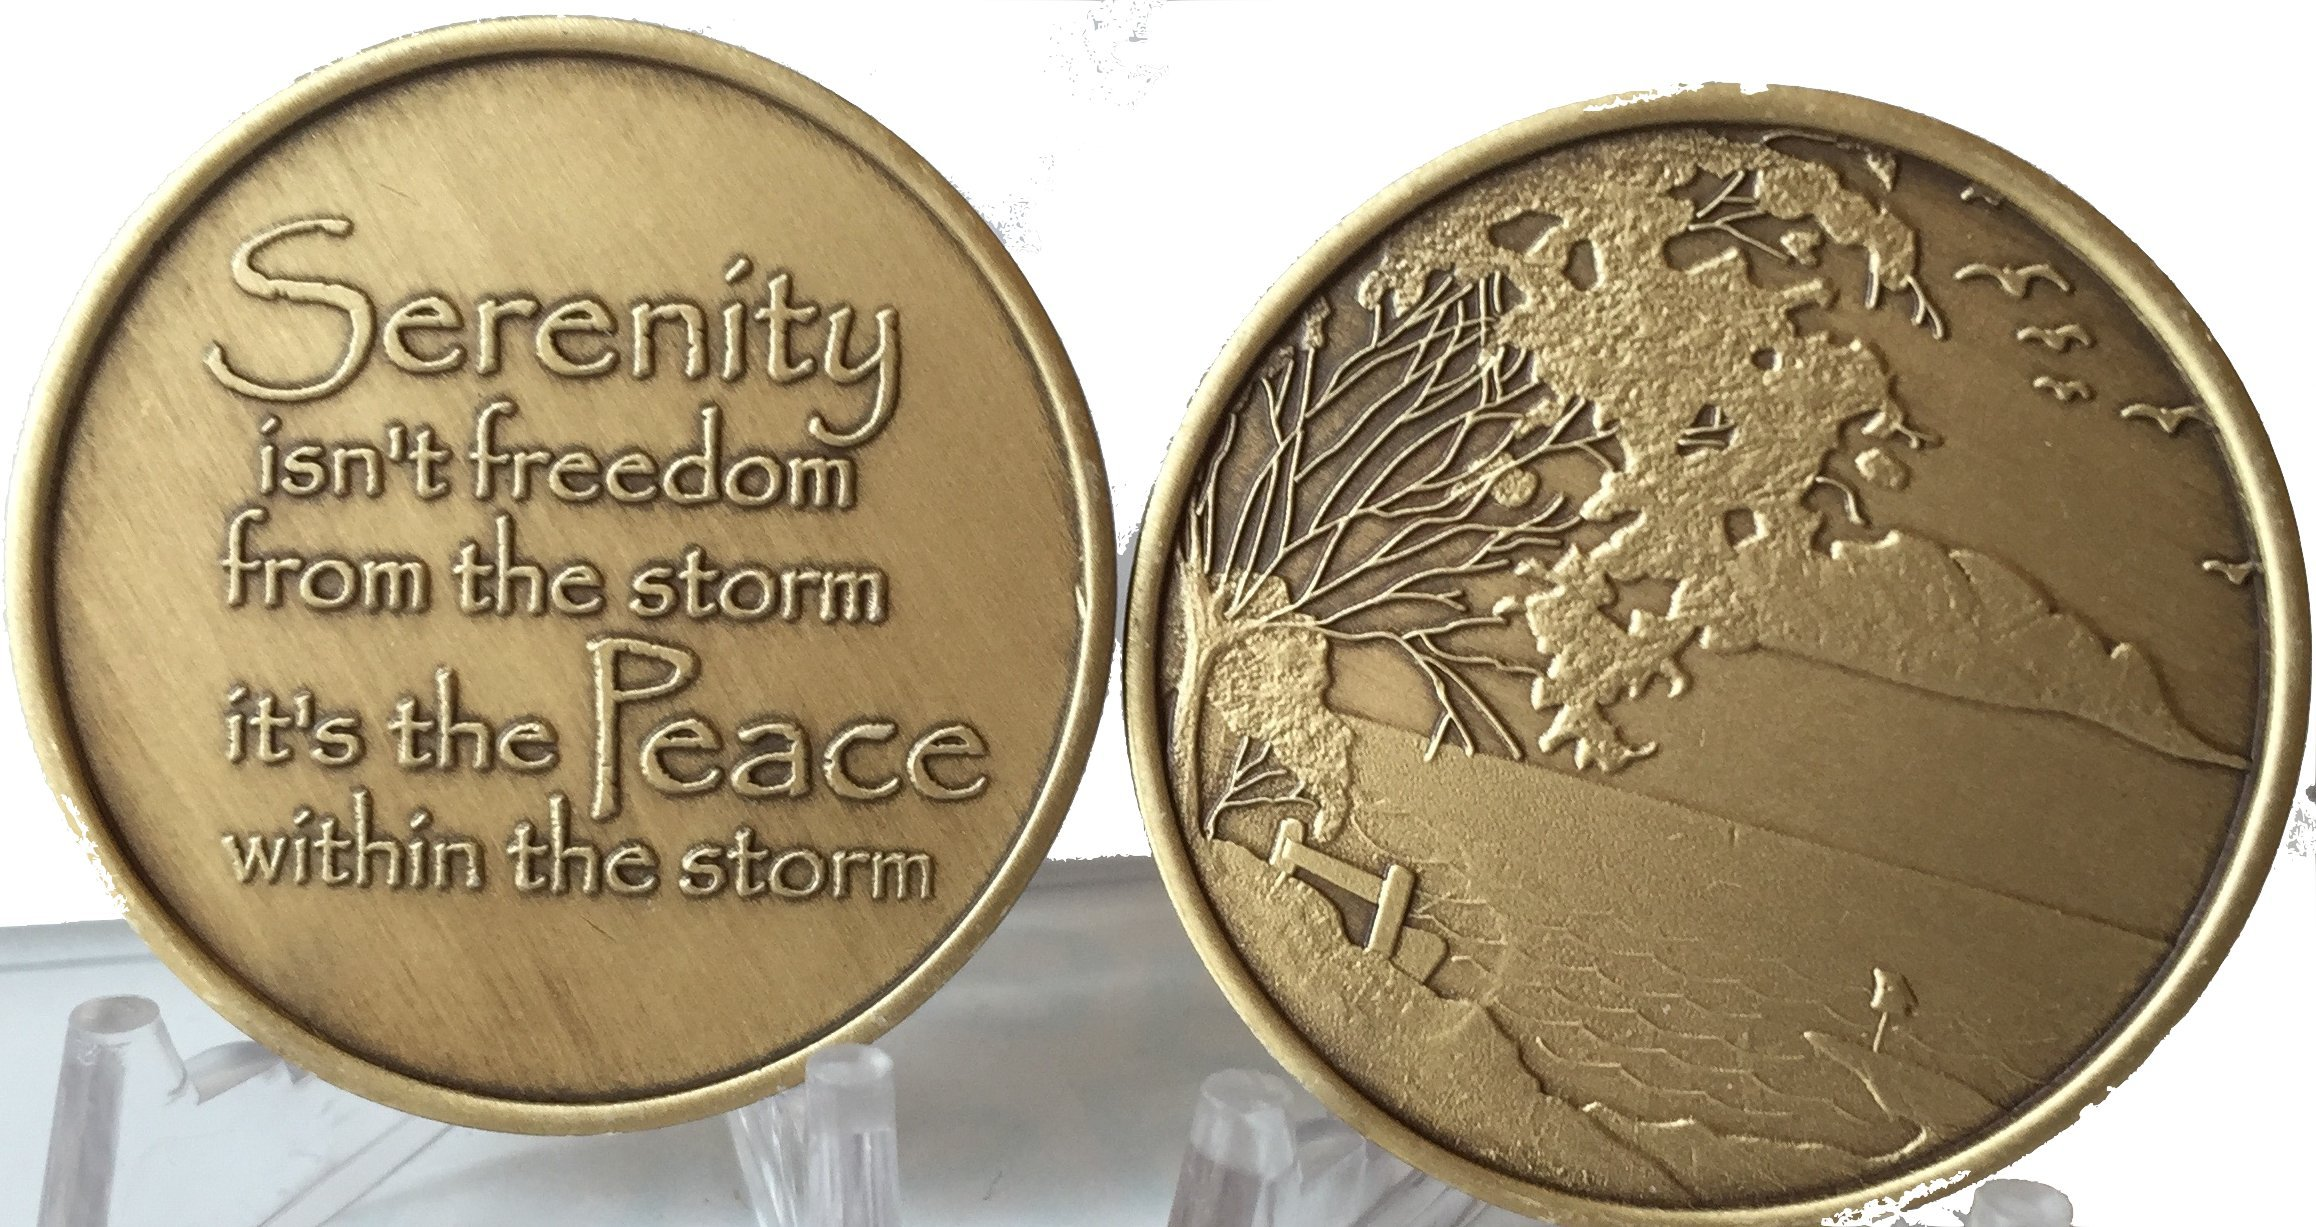 Bulk Lot of 25 Serenity Lake Peace Within The Storm Bronze Medallions Chip Wholesale Set by RecoveryChip (Image #6)